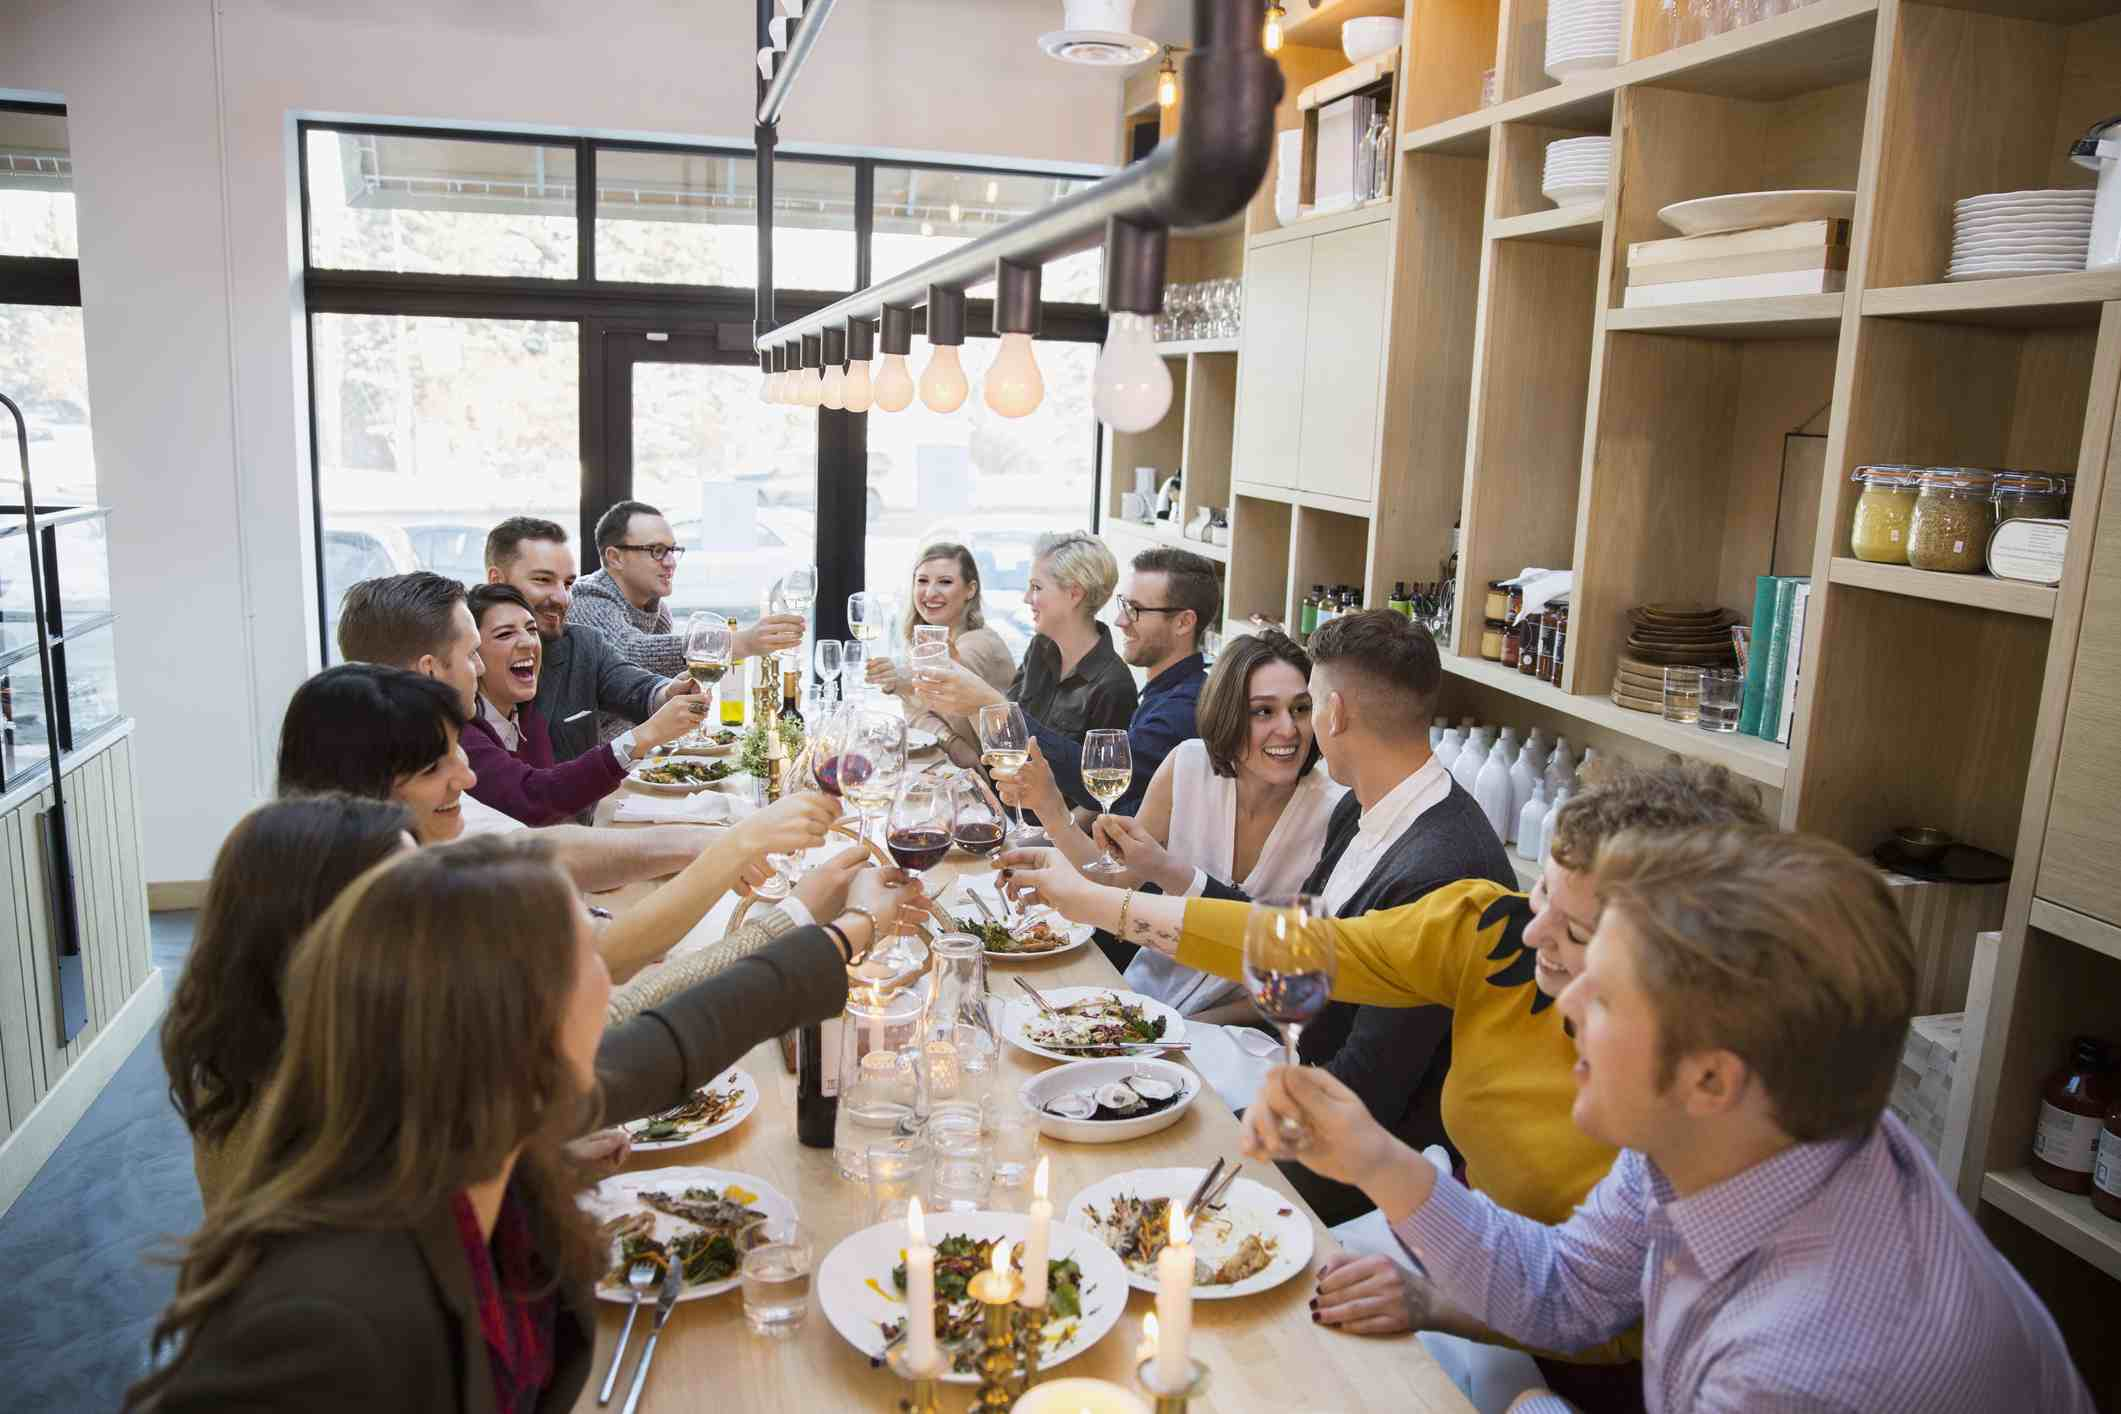 Friends Toasting Wine Gles At Restaurant Table